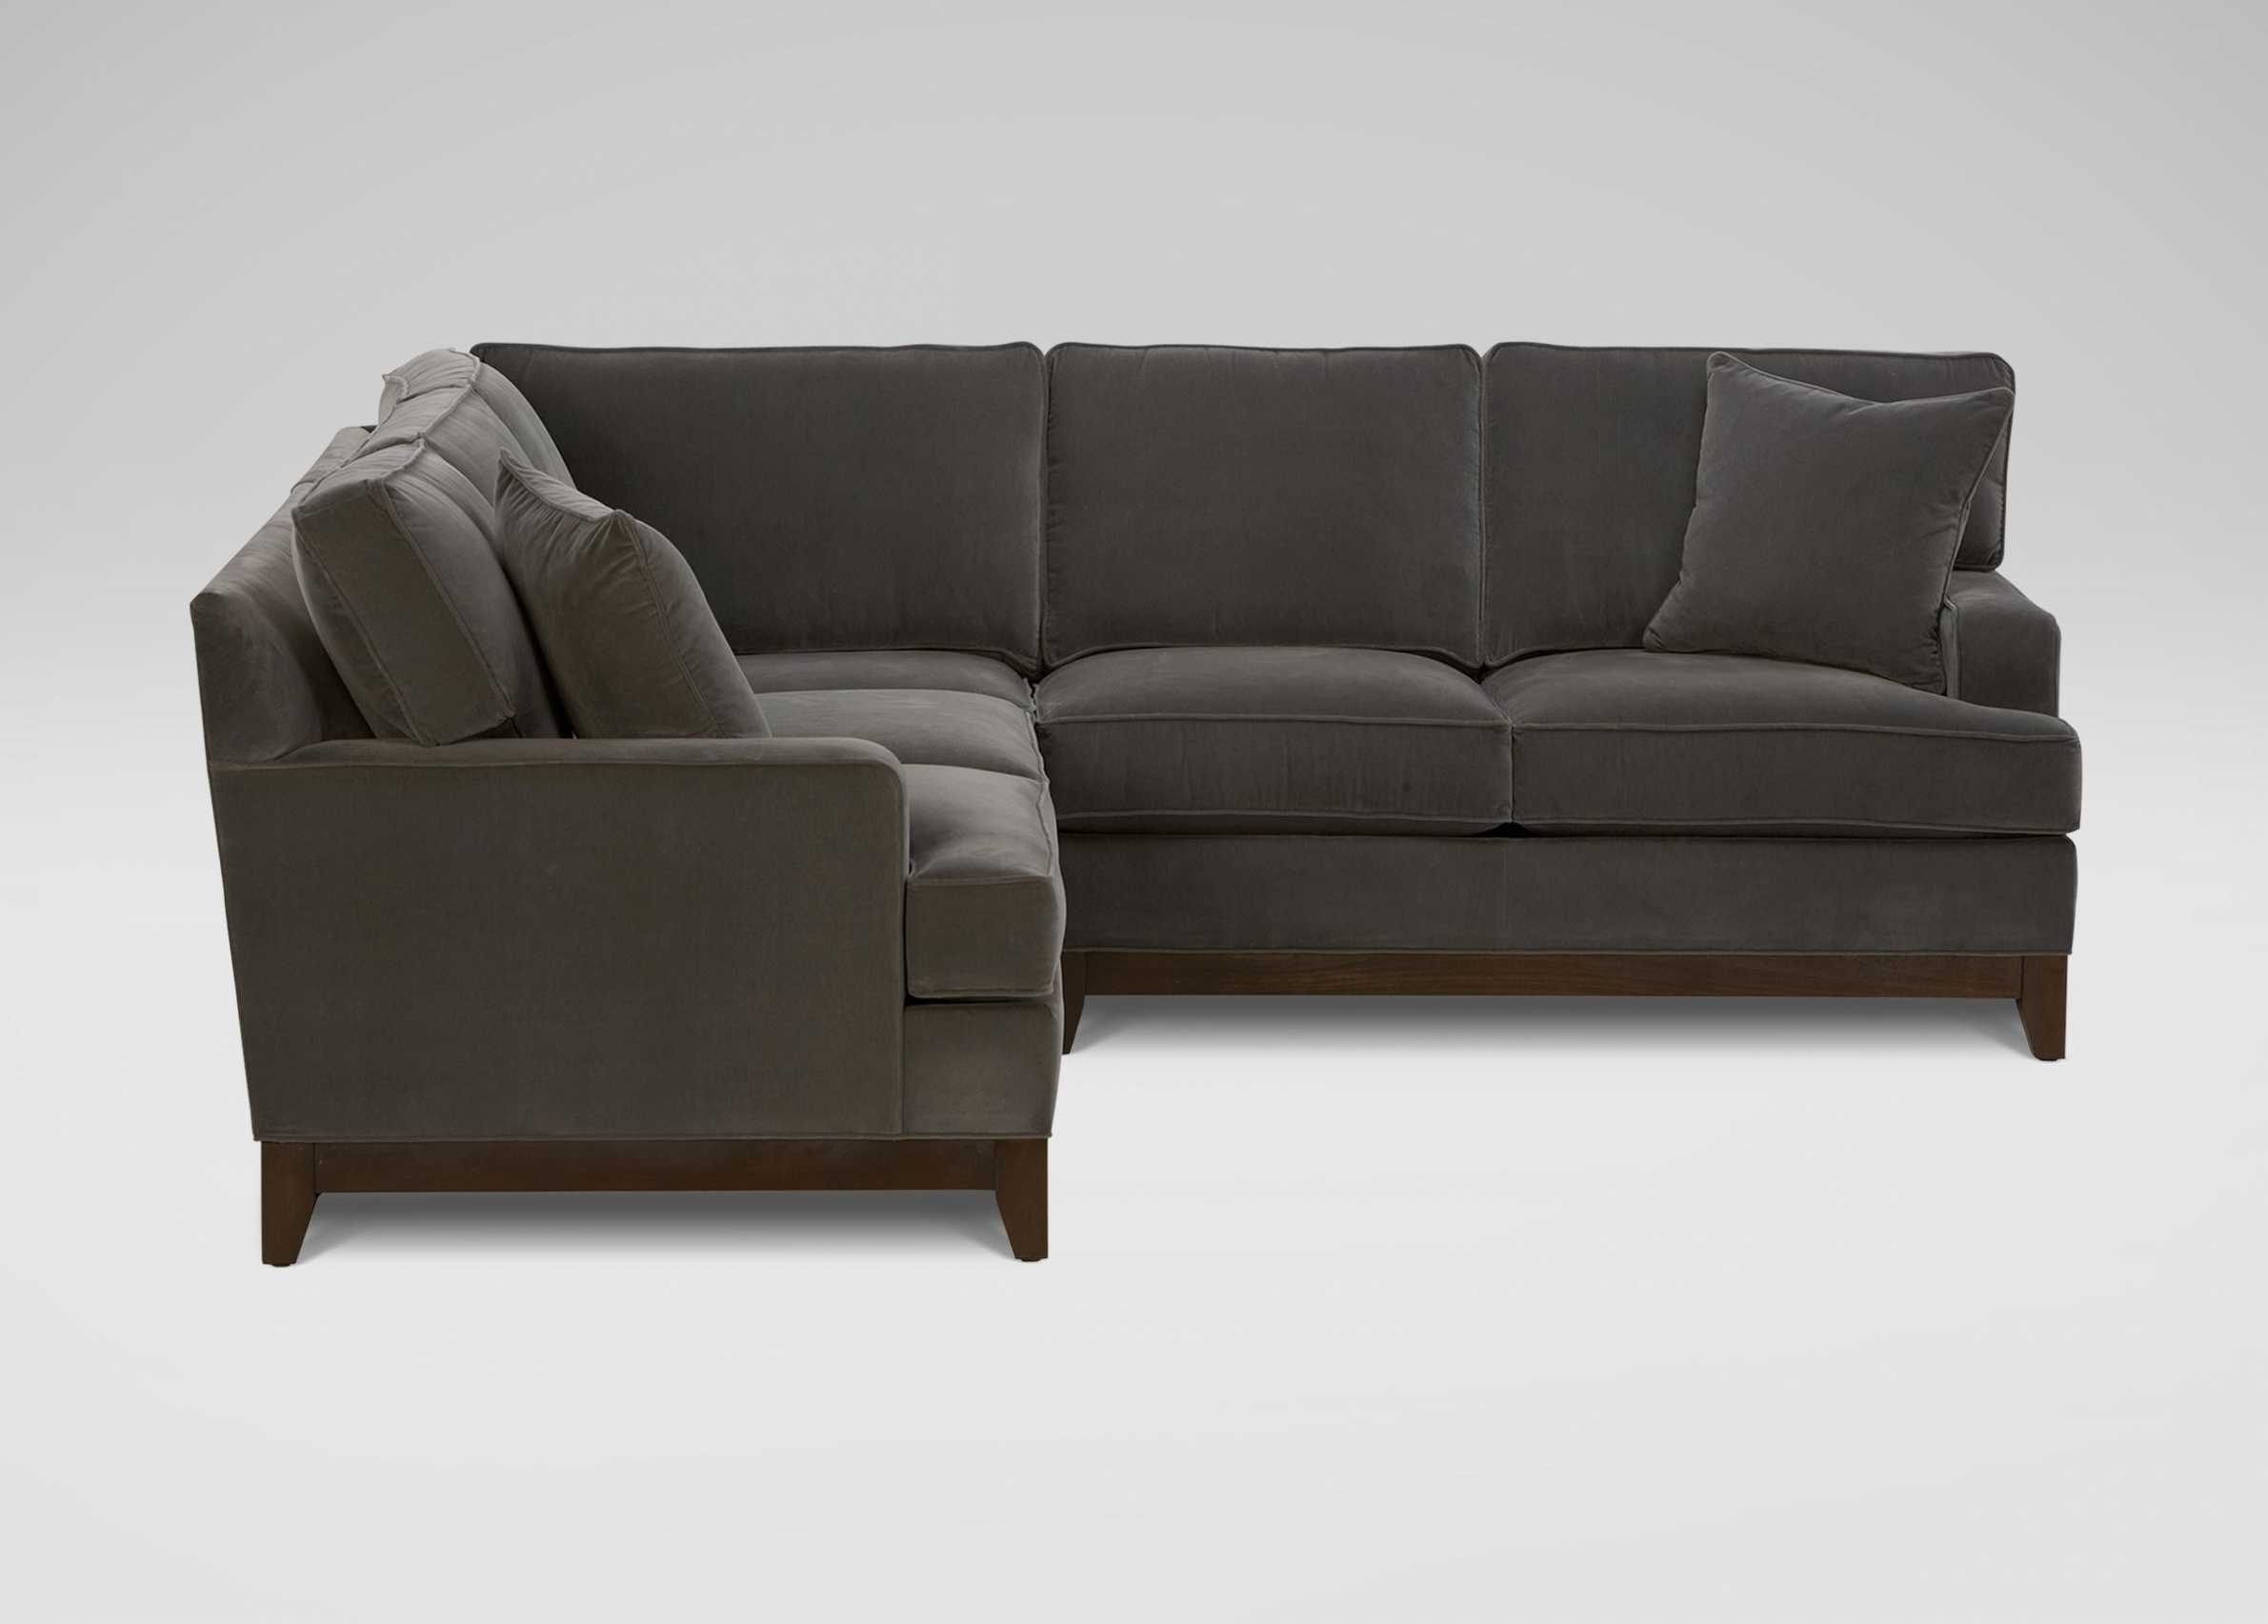 Sofa: Ethan Allen Sectional Sofa Arcata Sectionals | Thedailygraff with regard to Sectional Sofas at Ethan Allen (Image 10 of 10)